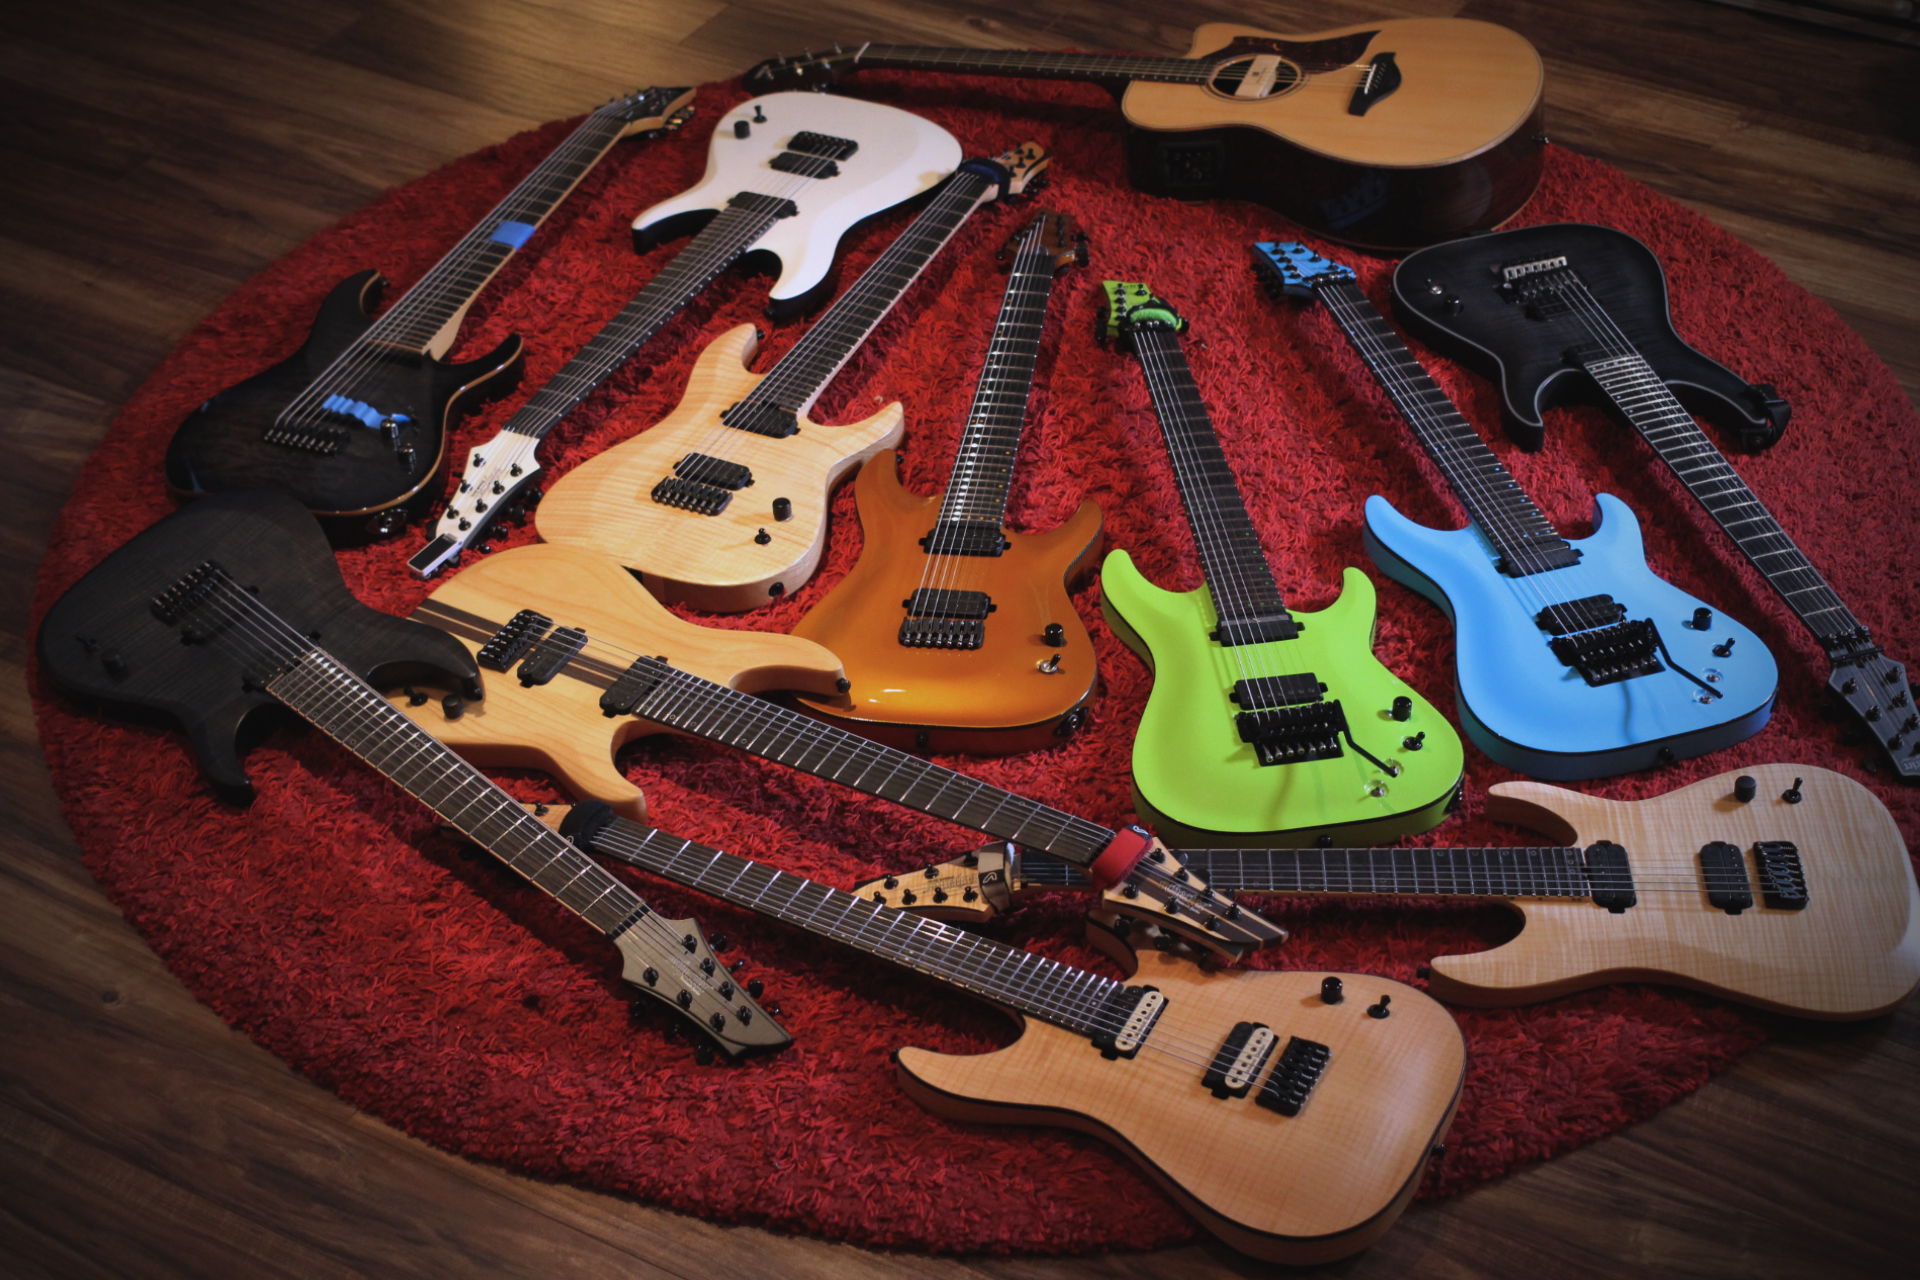 Keith Merrow Guitars